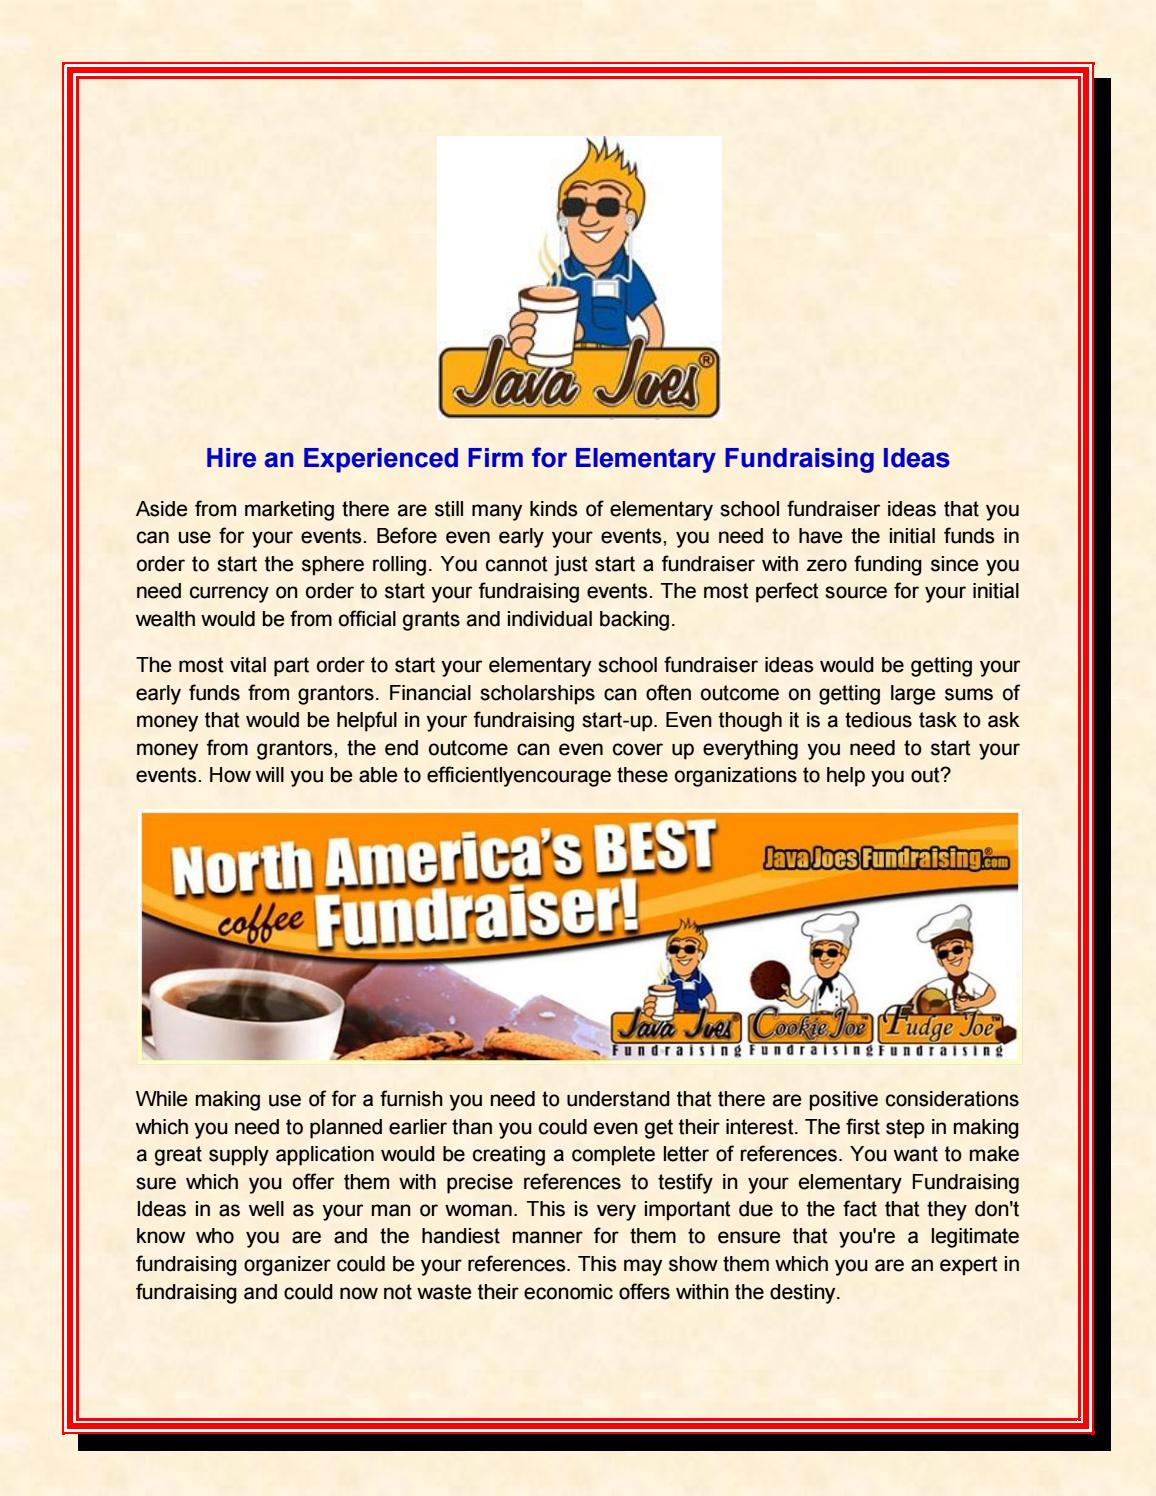 hire an experienced firm for elementary fundraising ideas by java